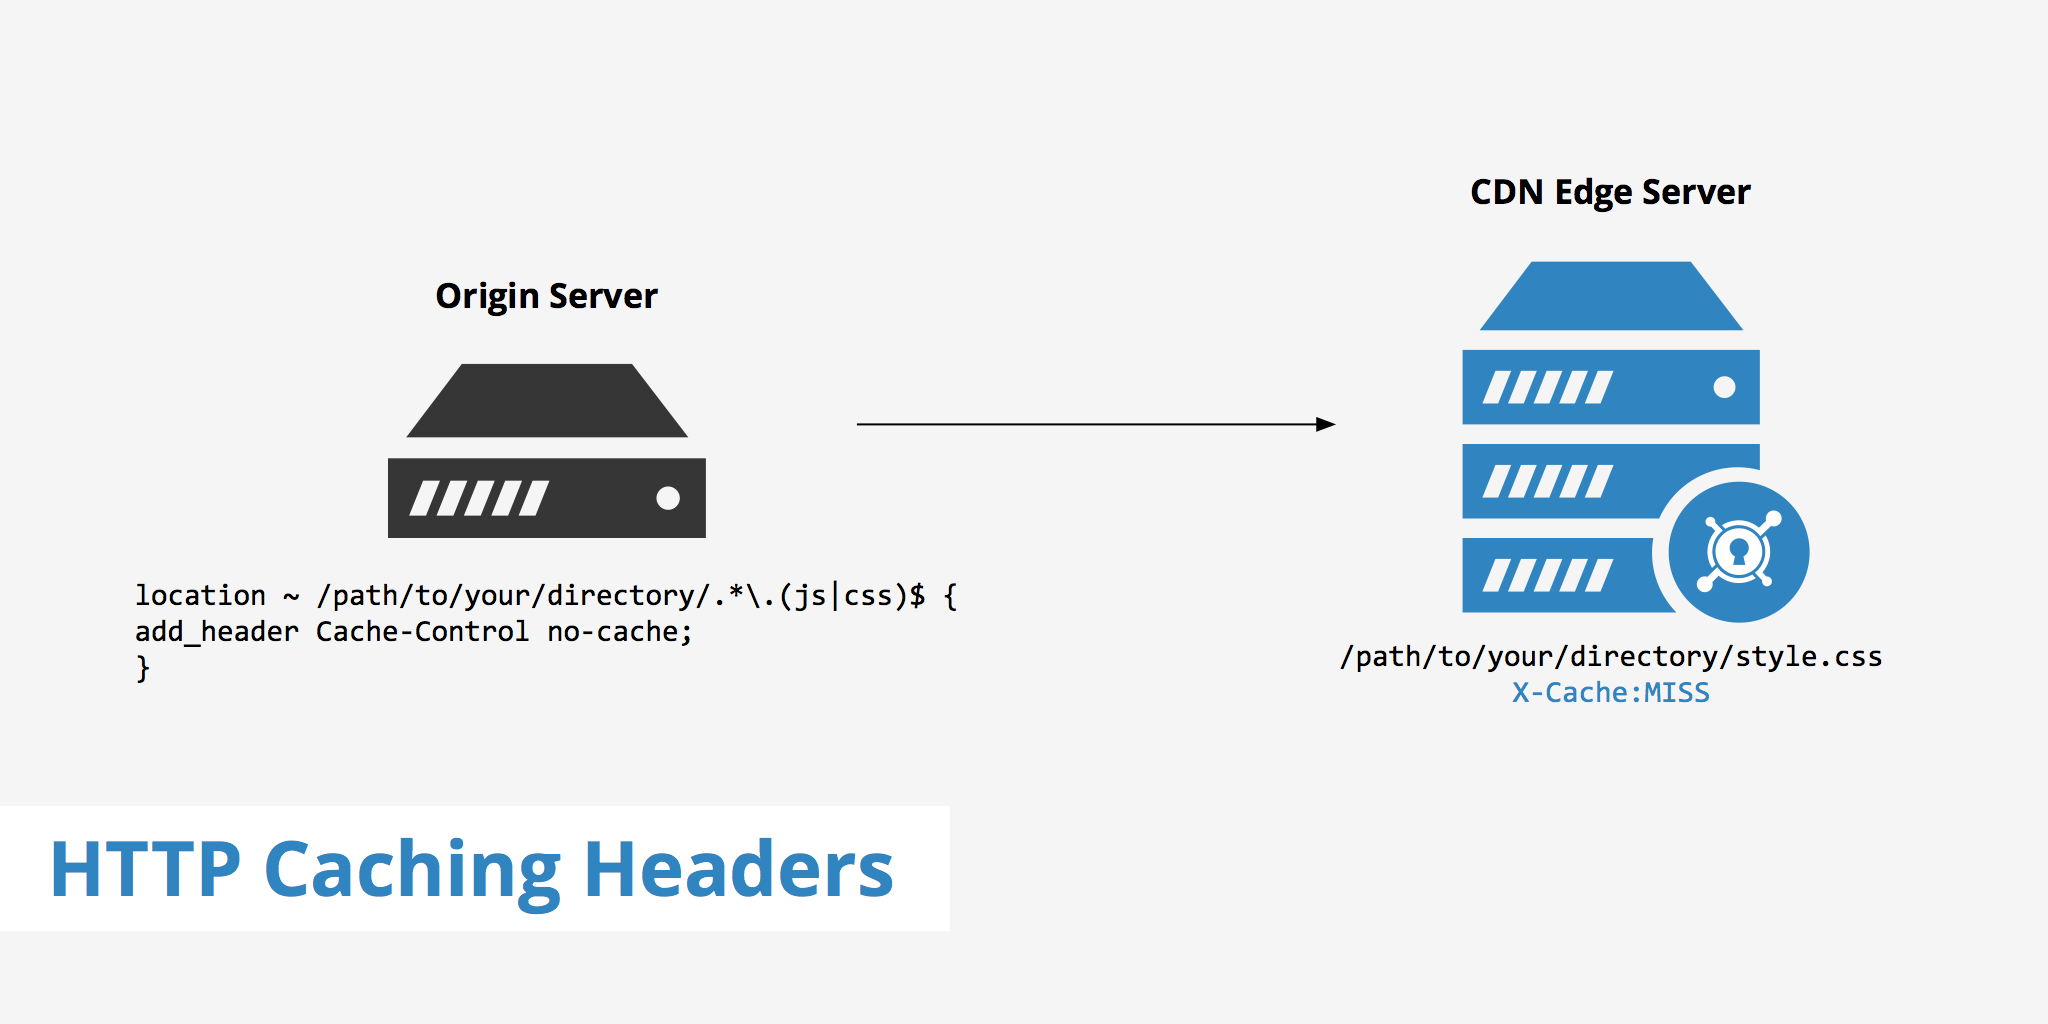 Using HTTP Caching Headers to Exclude Assets from a CDN